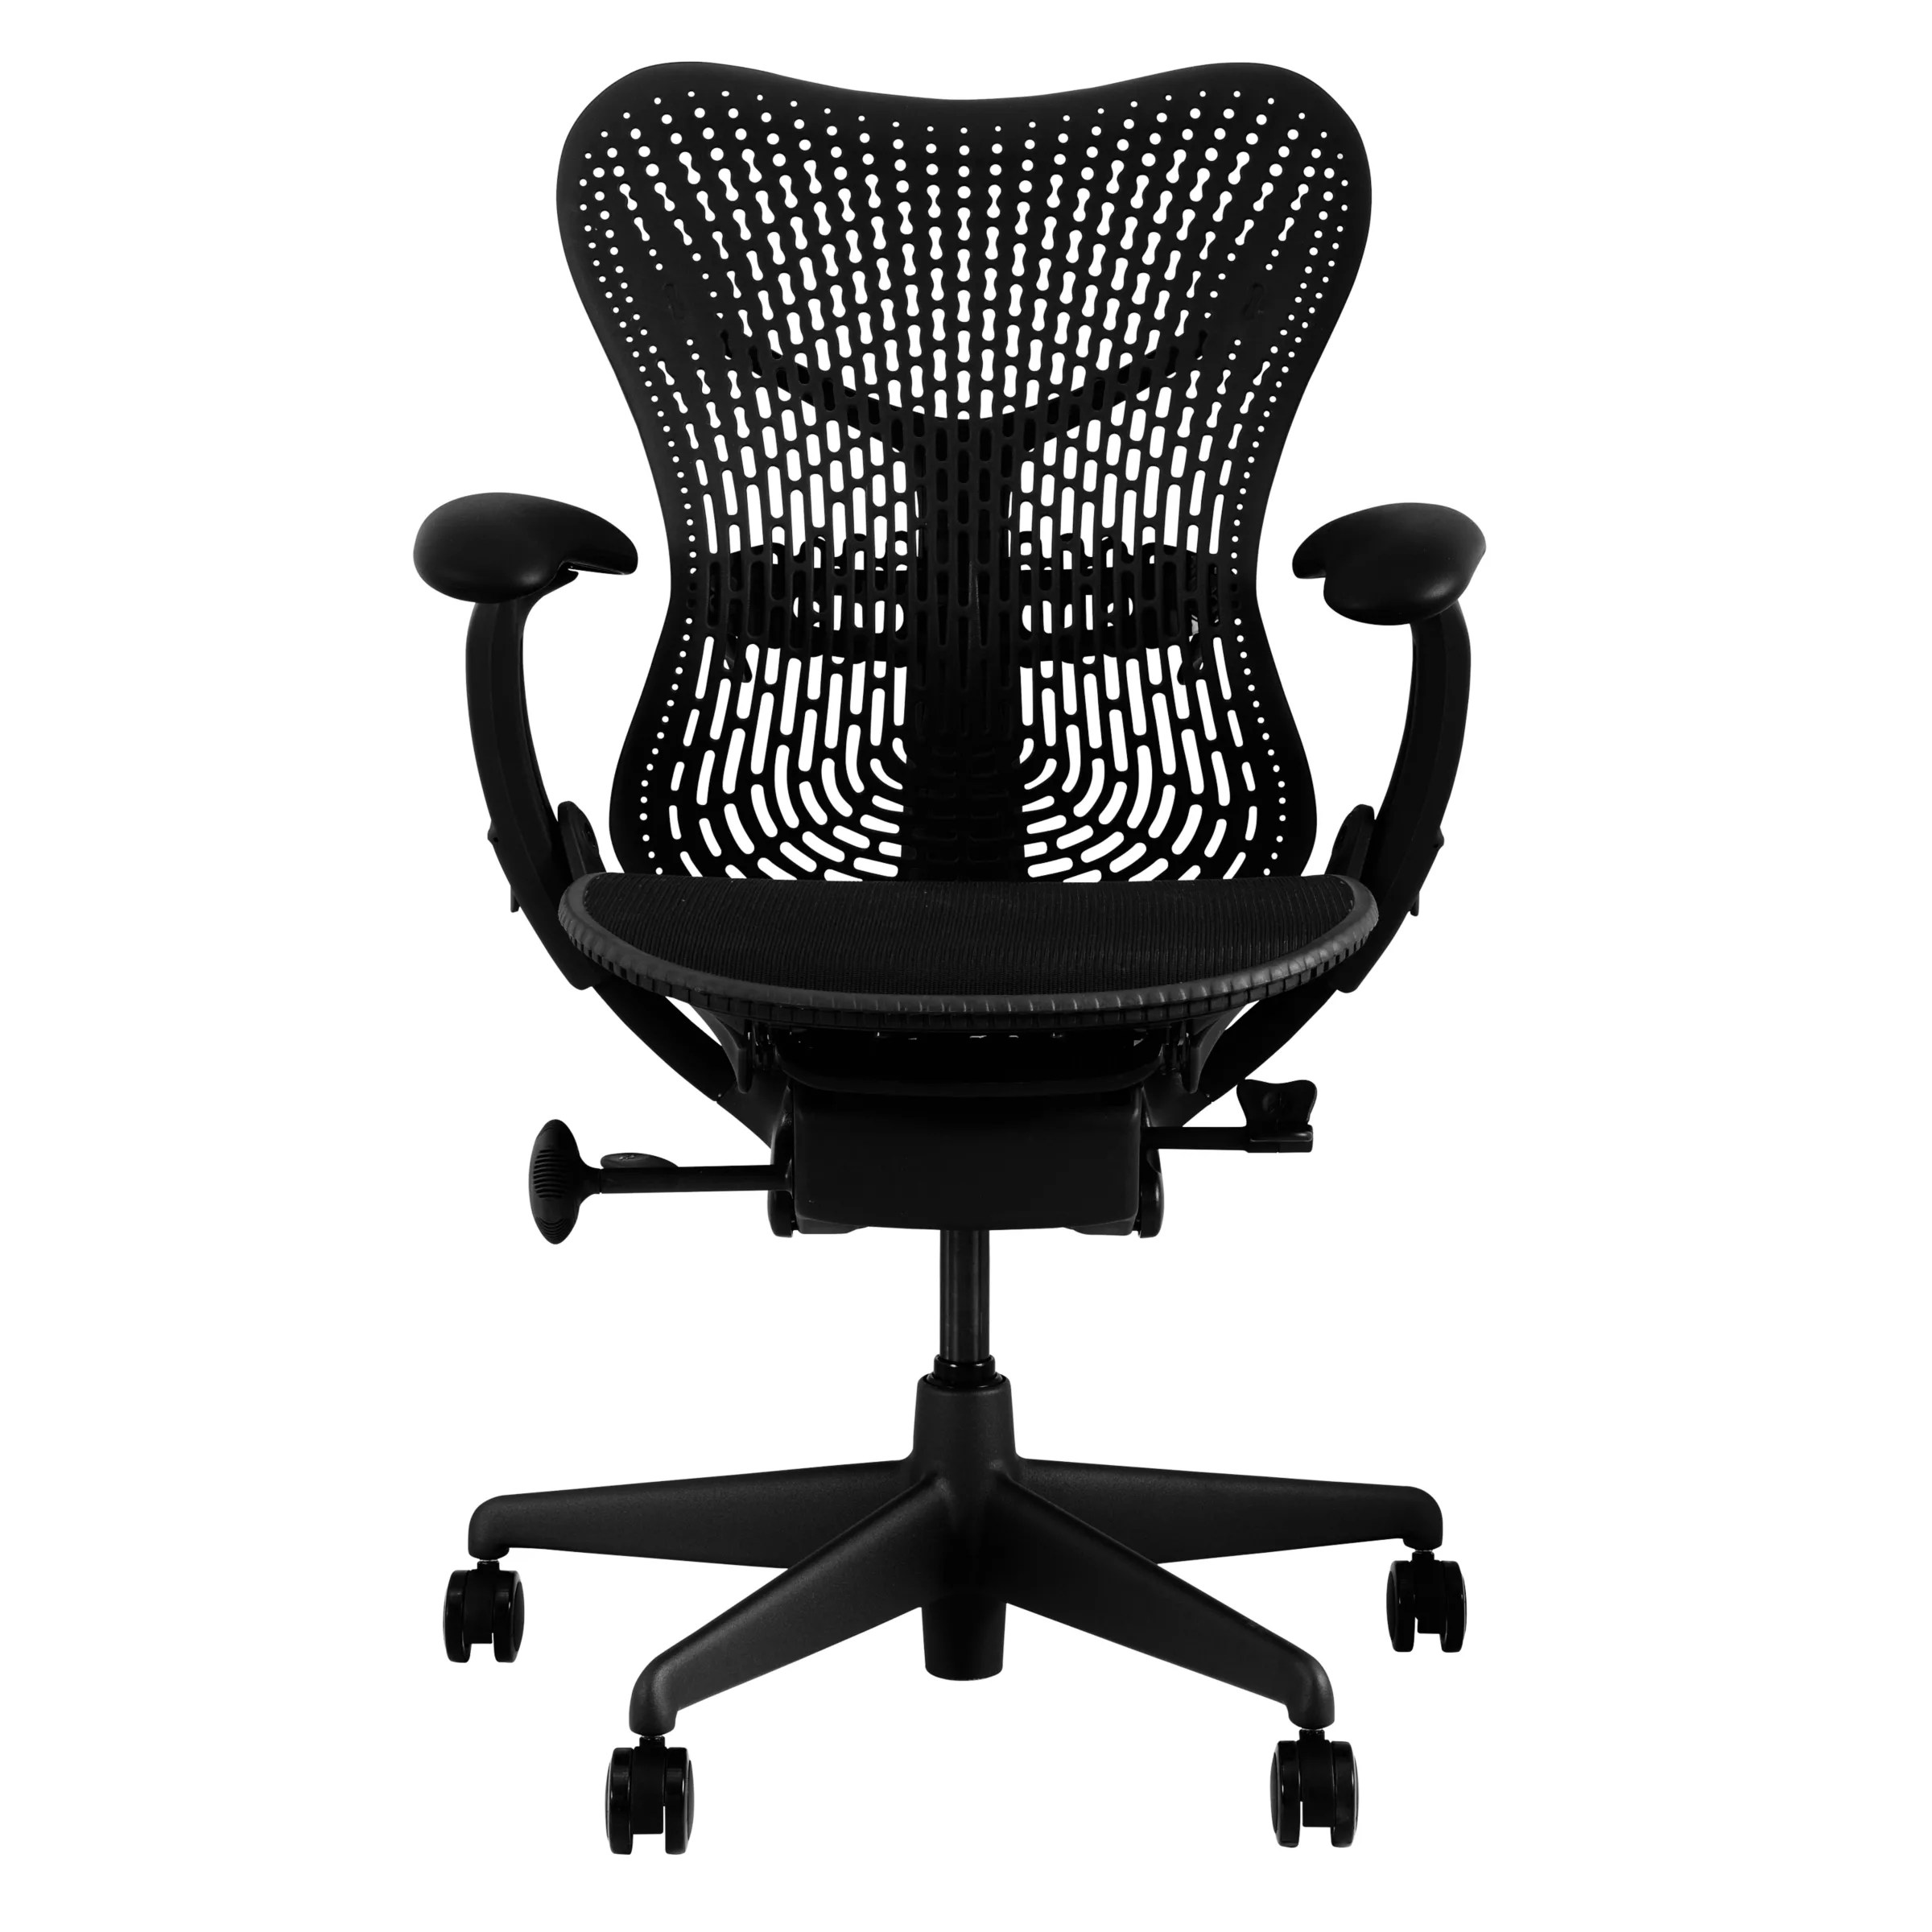 herman miller mirra 2 chair review cross back dining chairs uk office at john lewis and partners